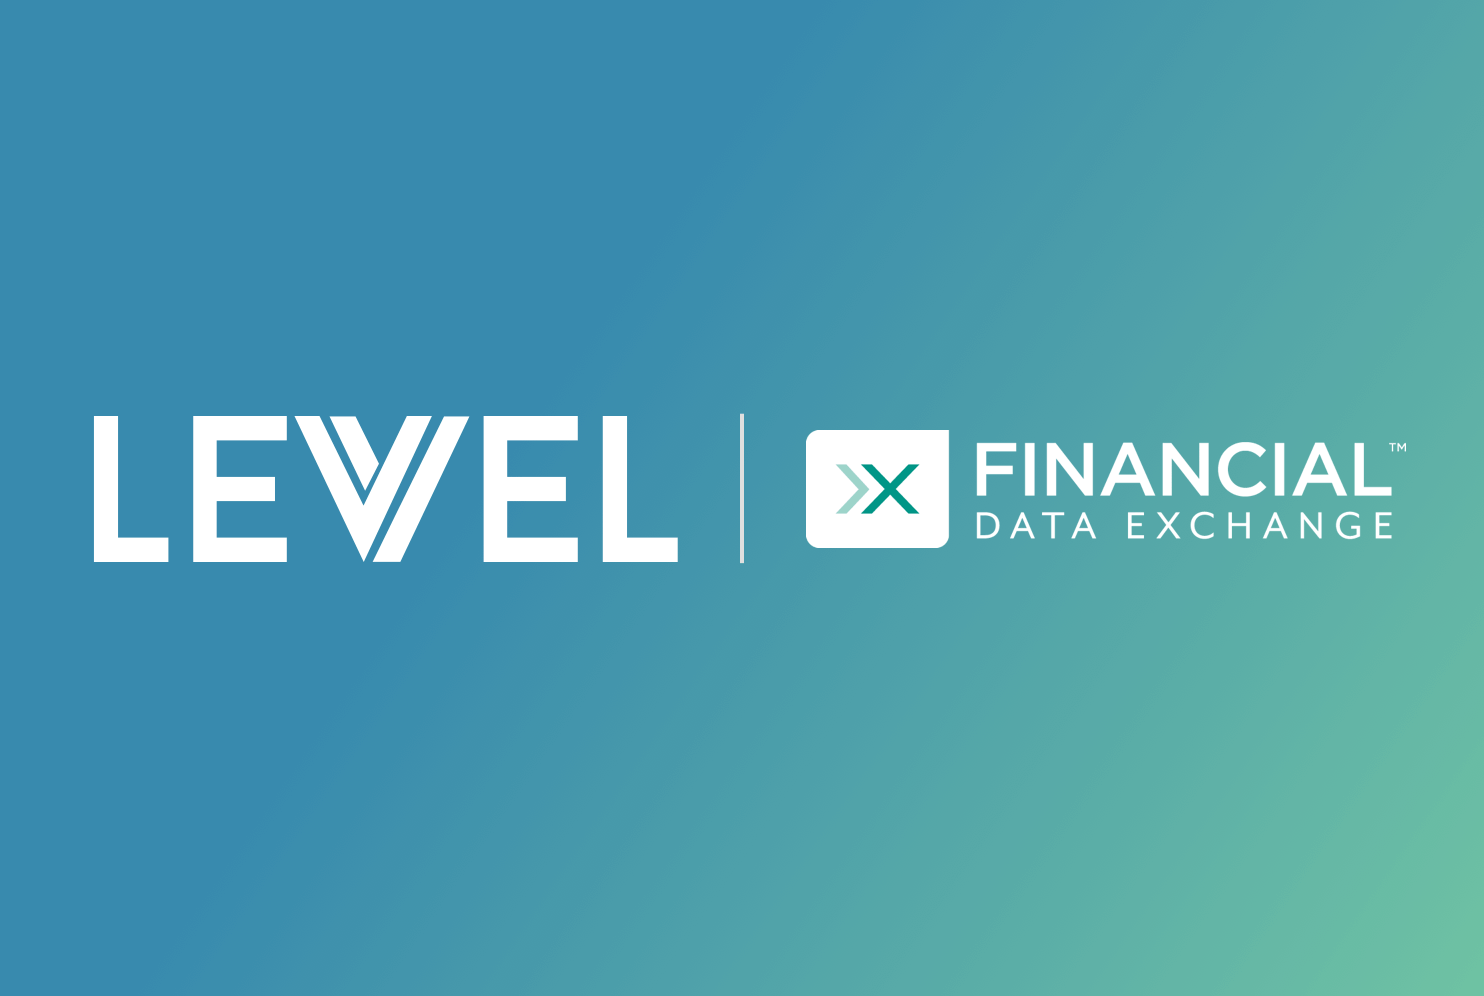 Levvel, a Global Technology and Strategy Consultancy, Joins the Financial Data Exchange